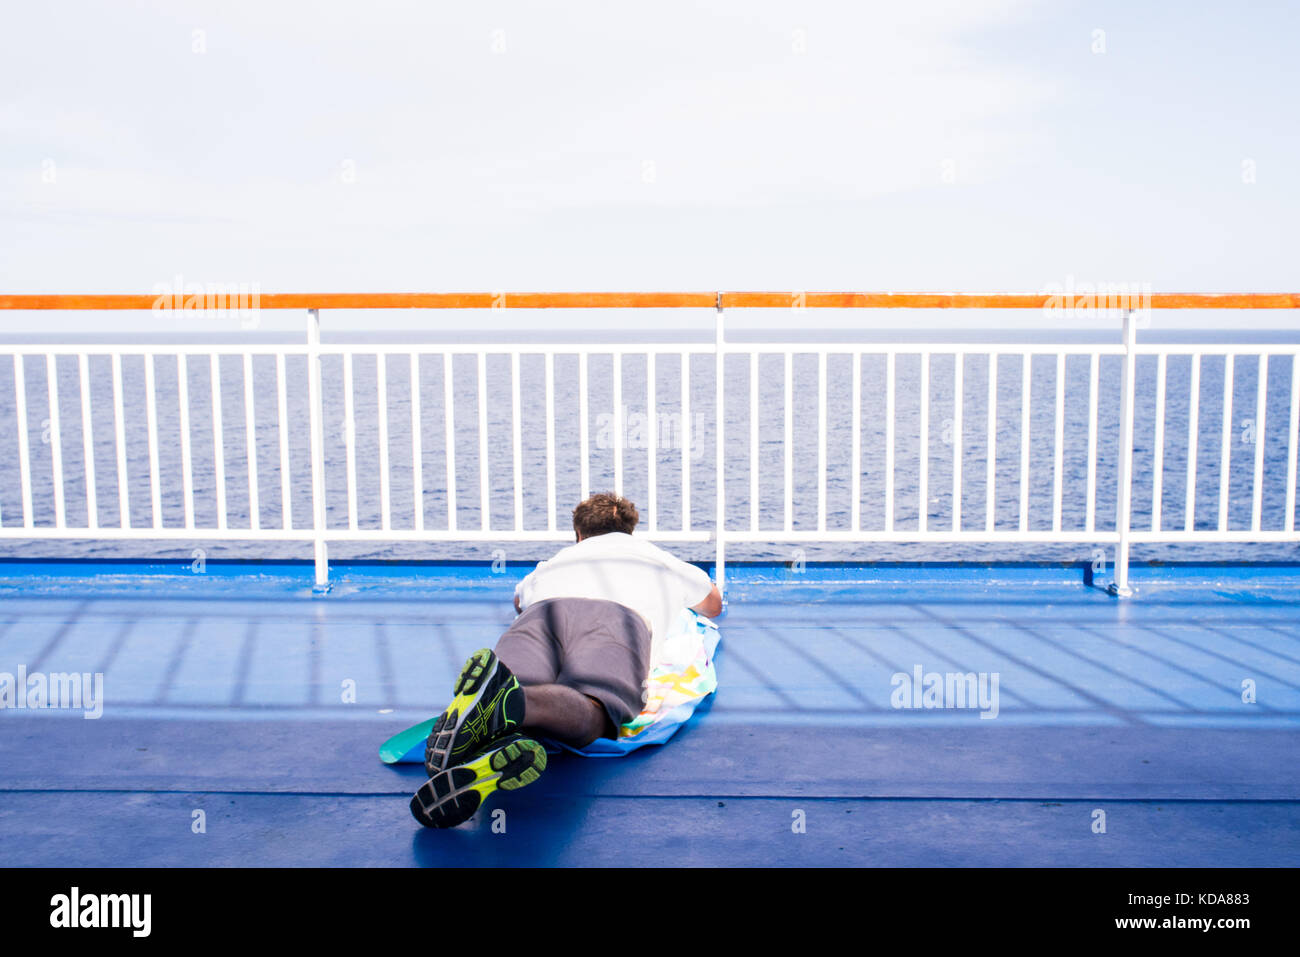 A man lying on the deck of a ship looks at the horizon while sailing on the Mediterranean Sea - Stock Image